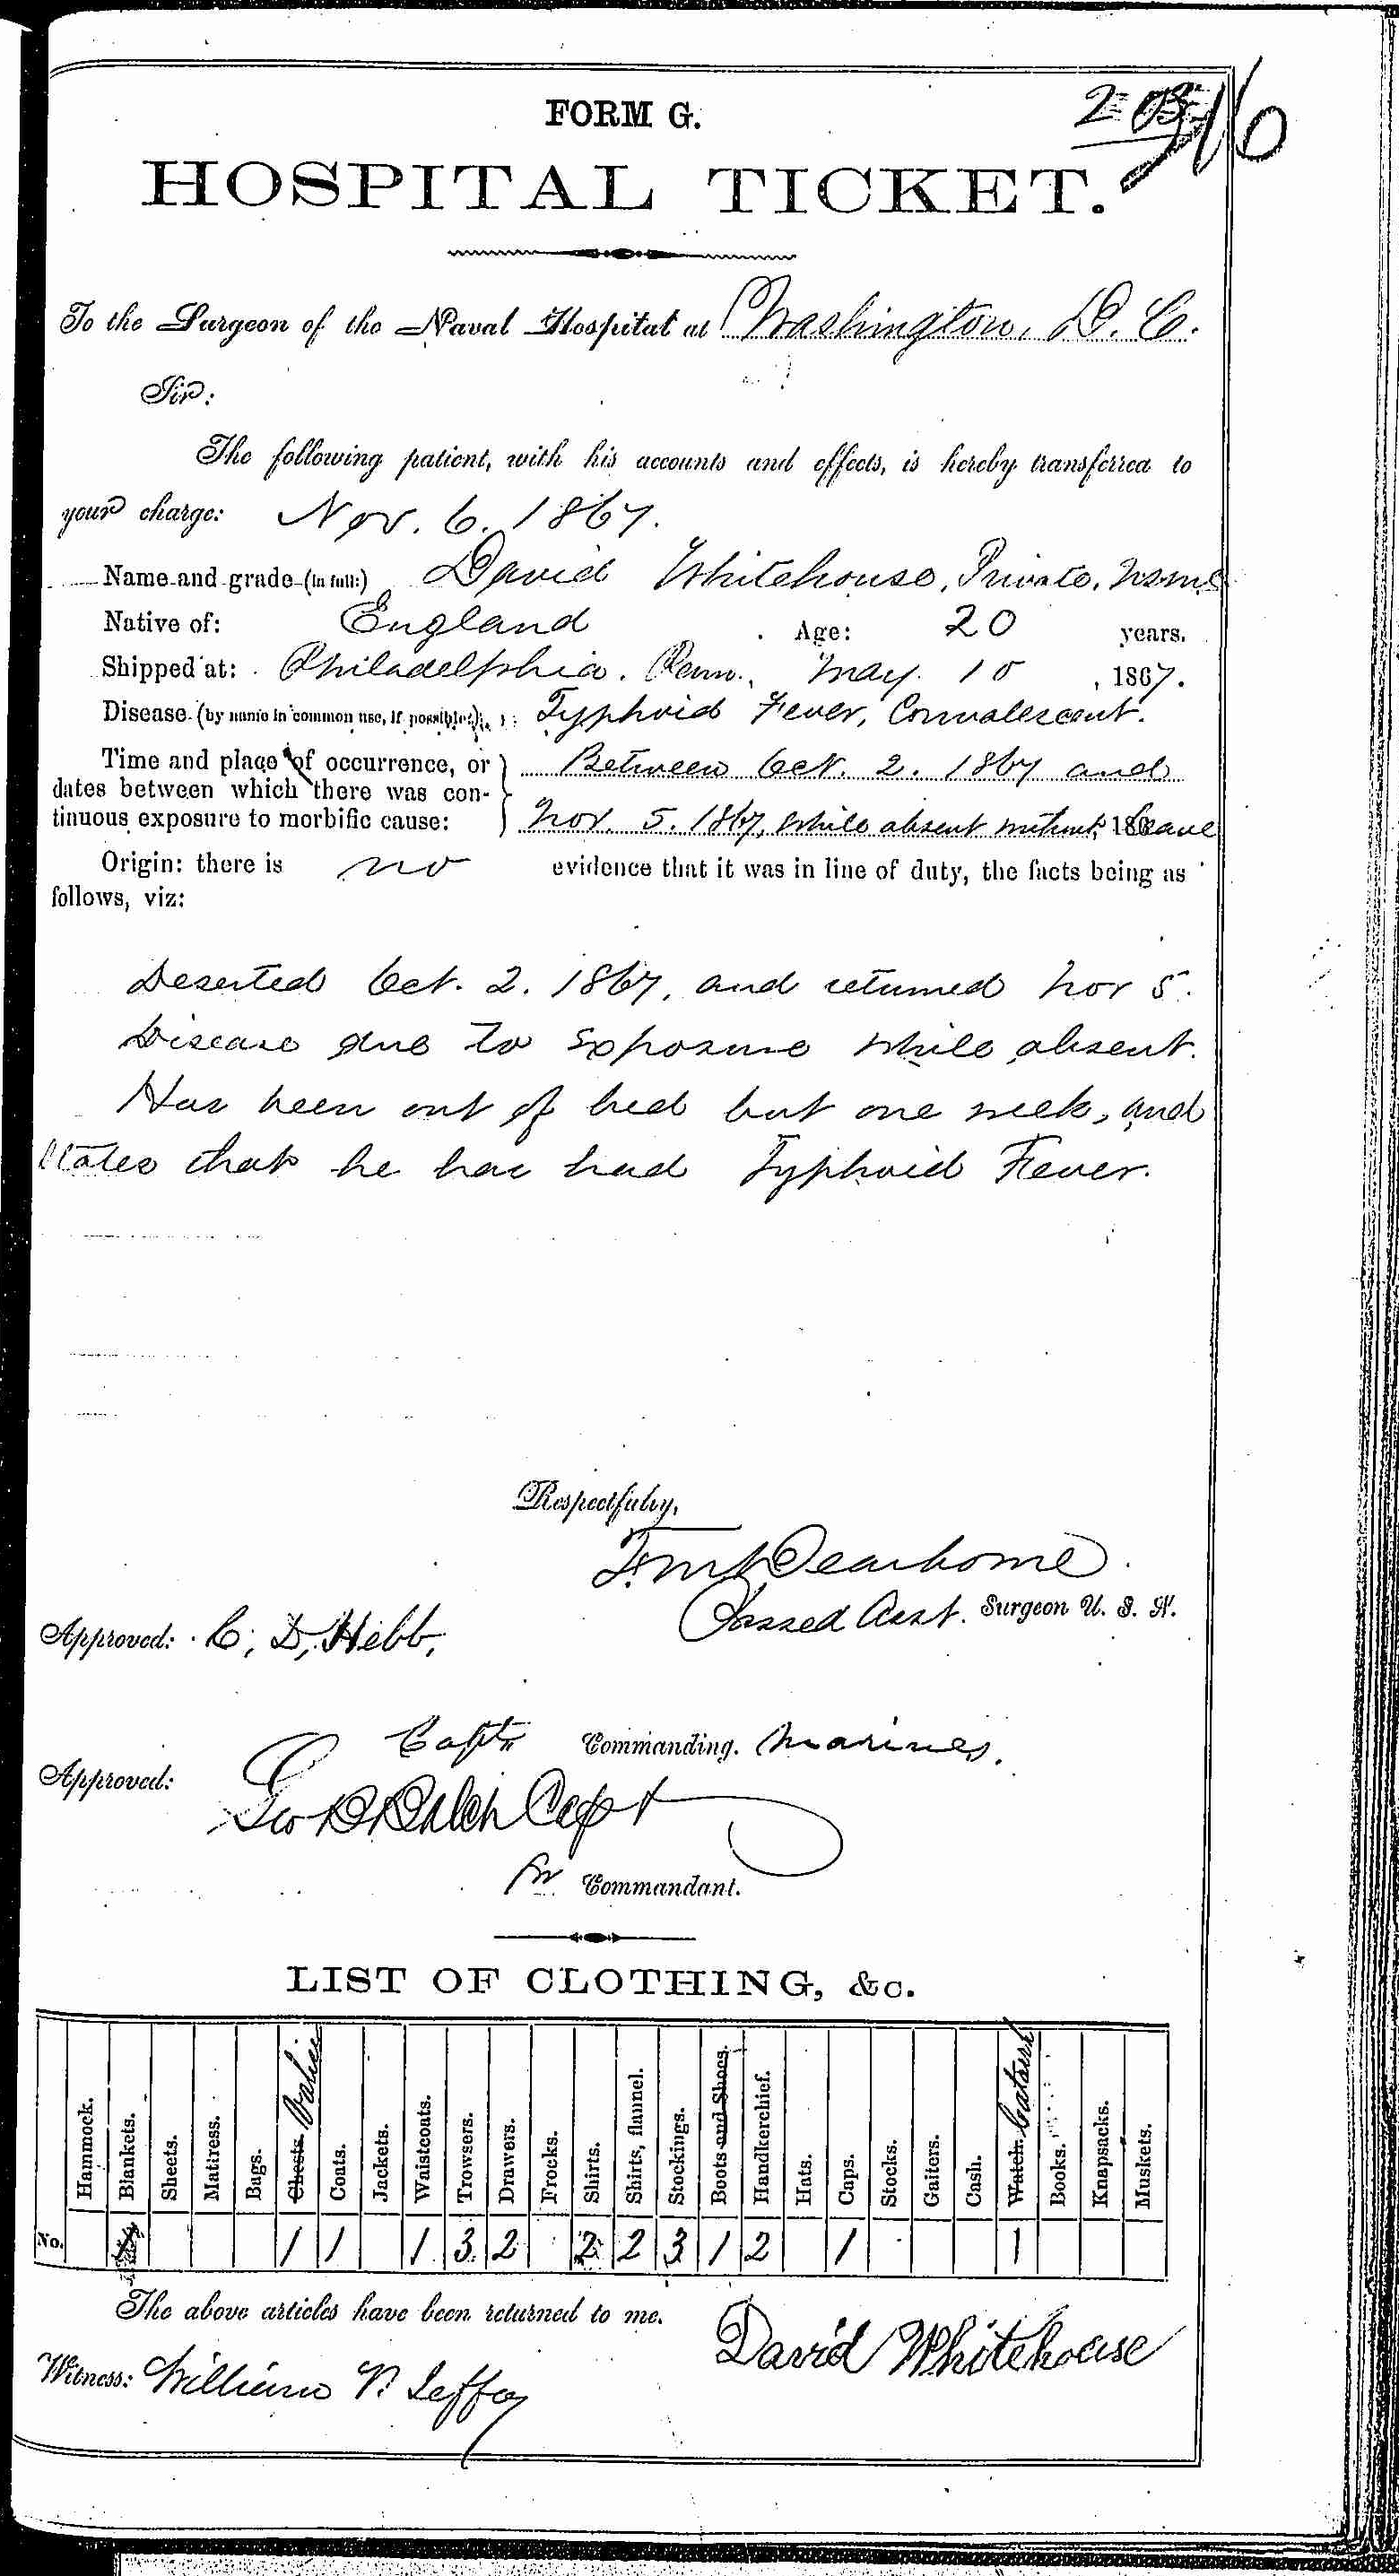 Entry for David Whitehouse (page 1 of 2) in the log Hospital Tickets and Case Papers - Naval Hospital - Washington, D.C. - 1866-68